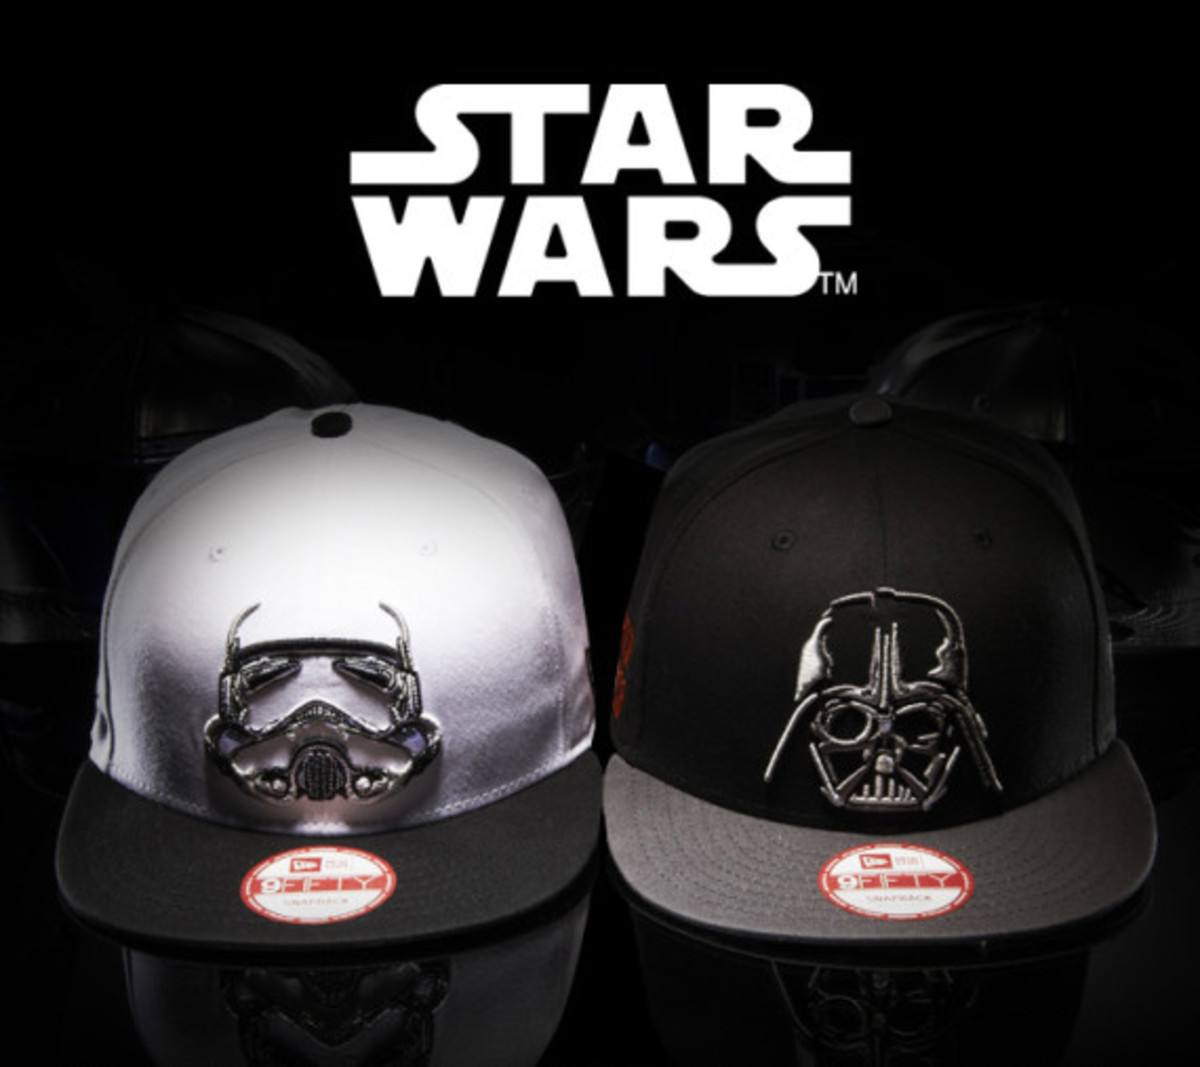 Star Wars x New Era 9FIFTY Snapback Cap Collection - 0